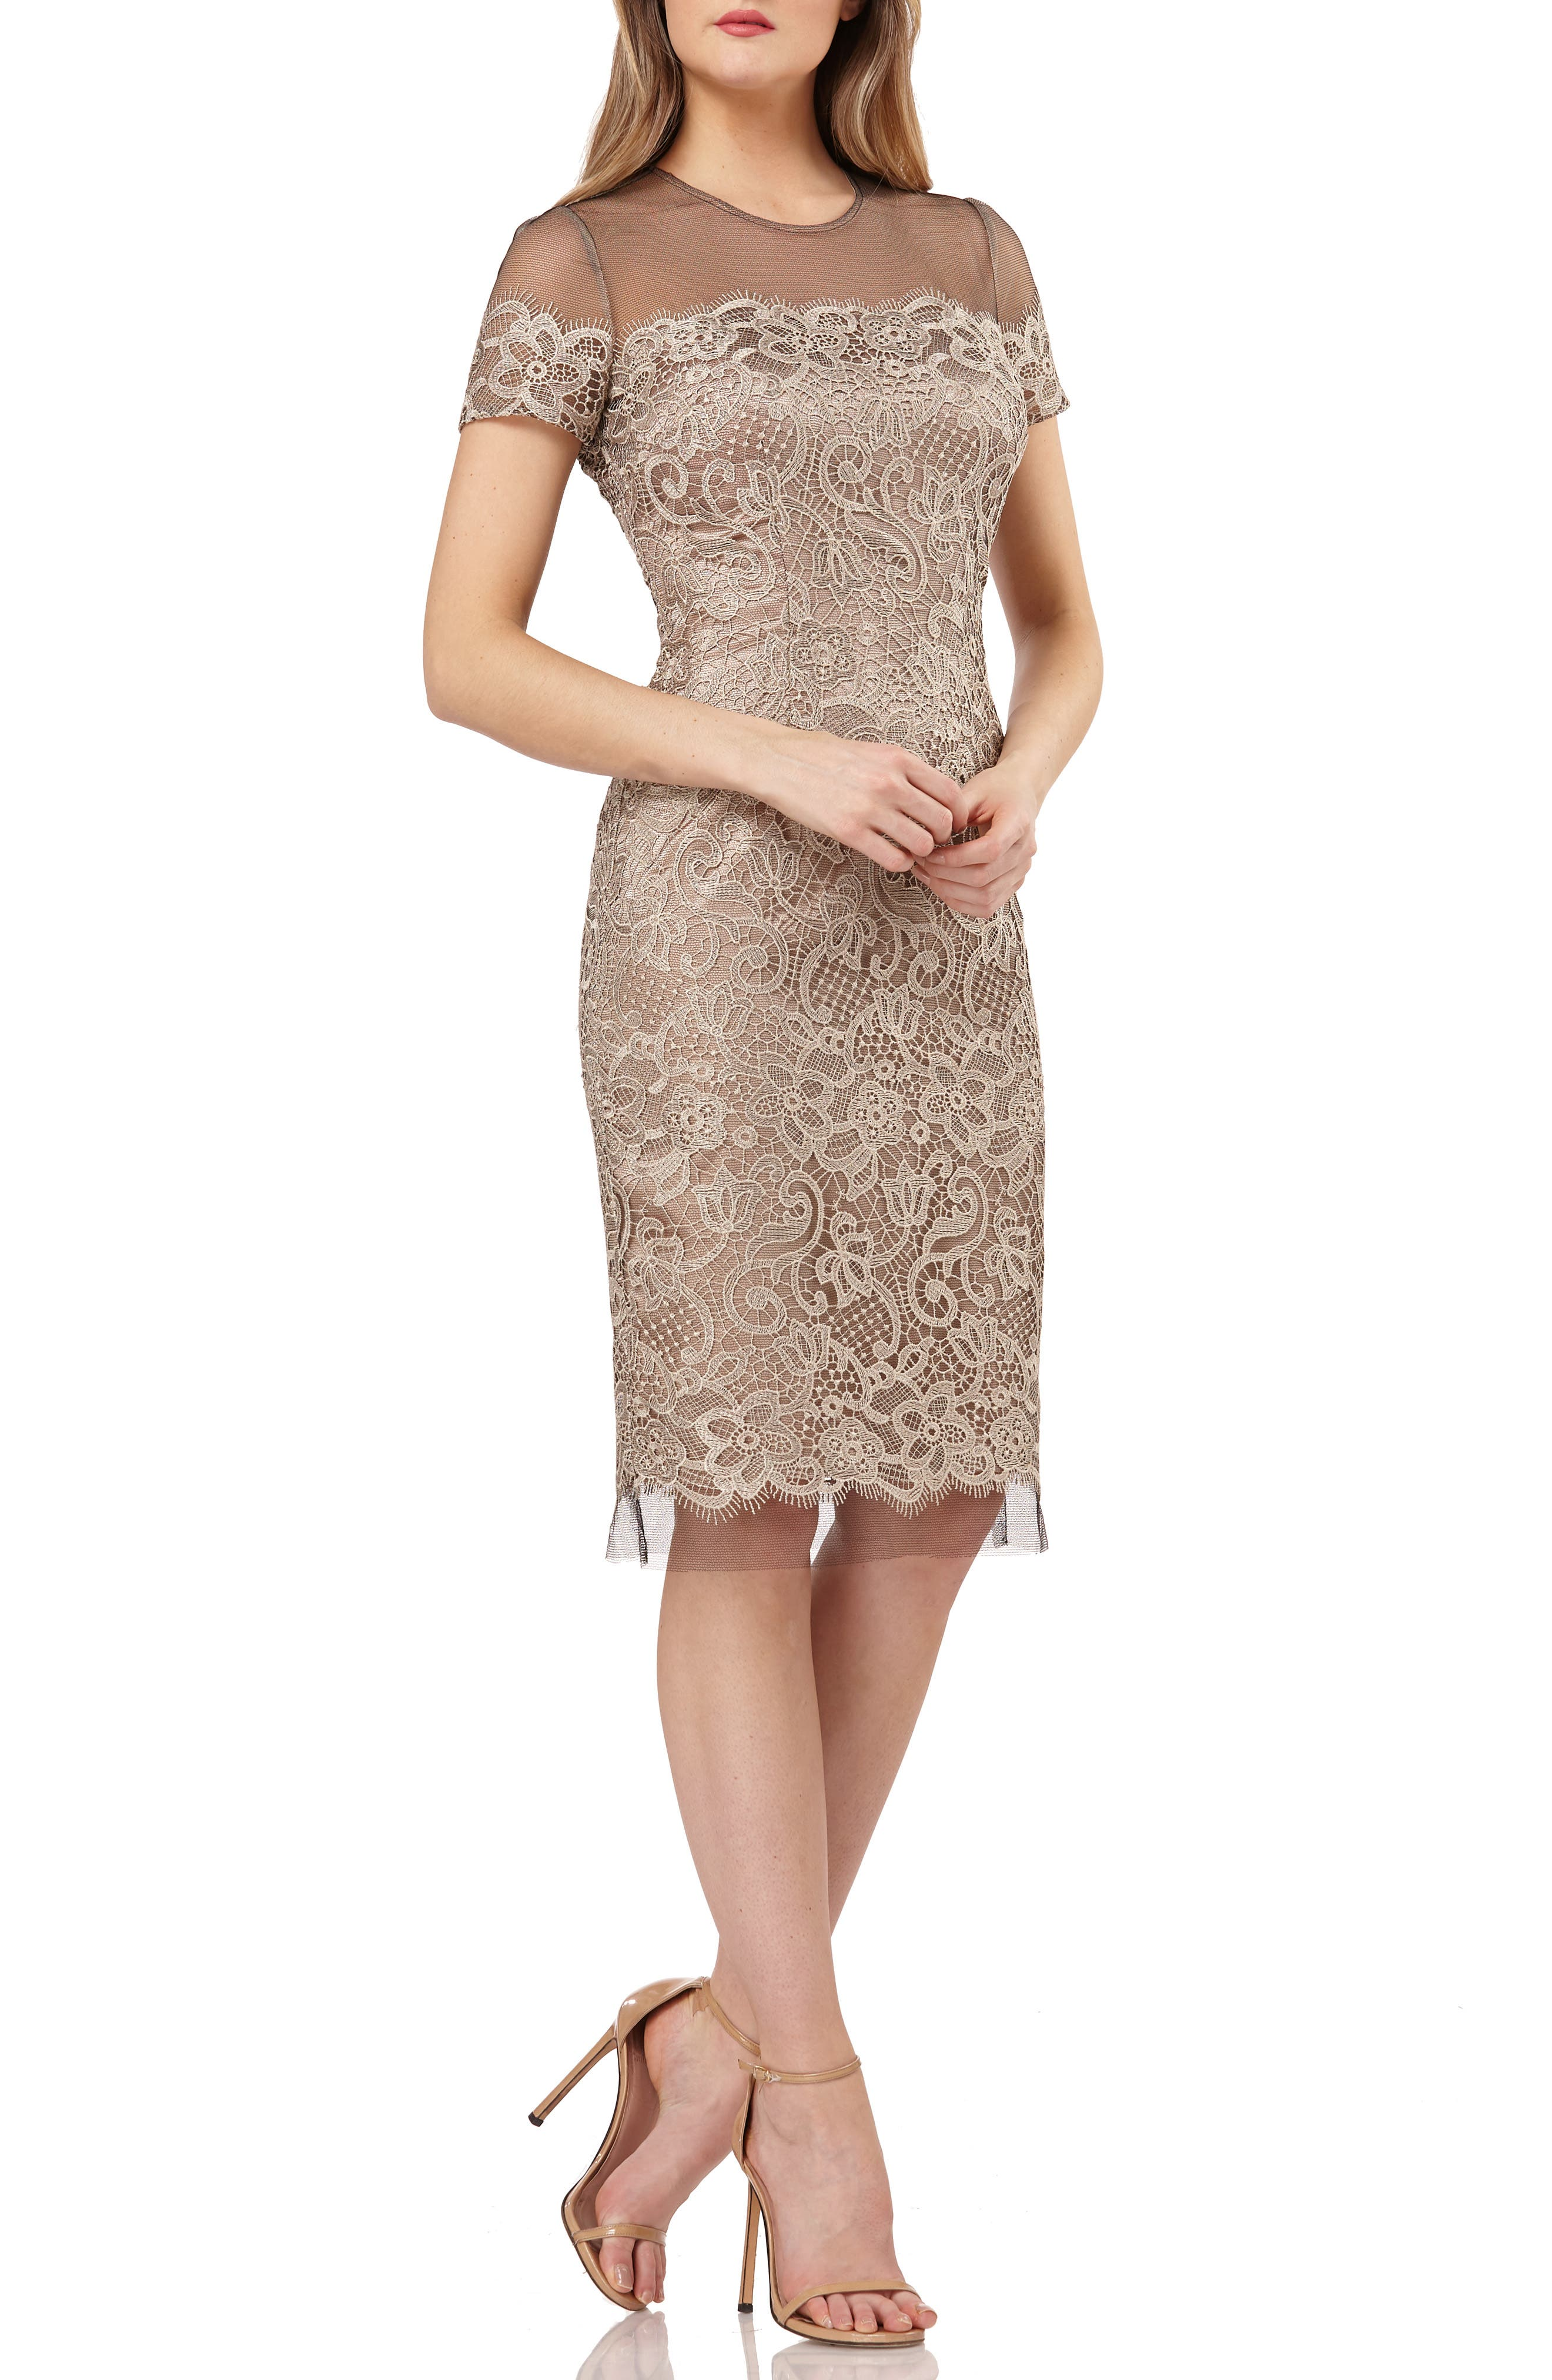 Js Collections Embroidered Lace Sheath Dress, Beige